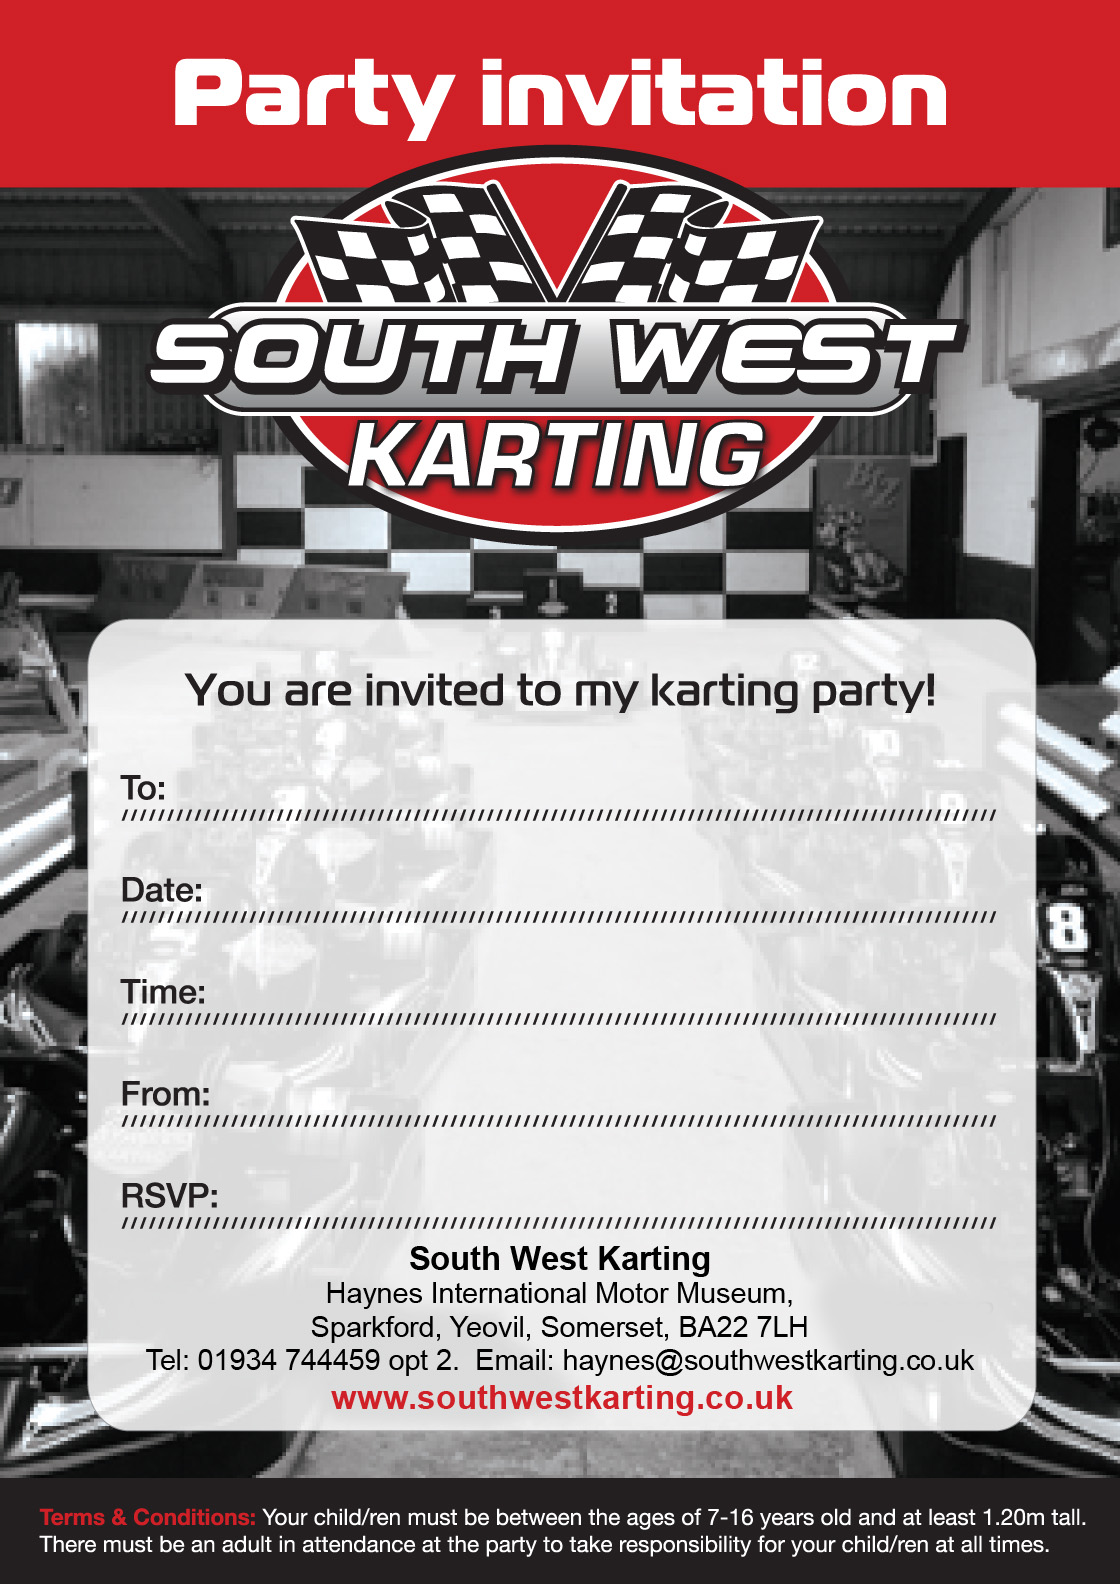 PARTIES | SouthWestKarting